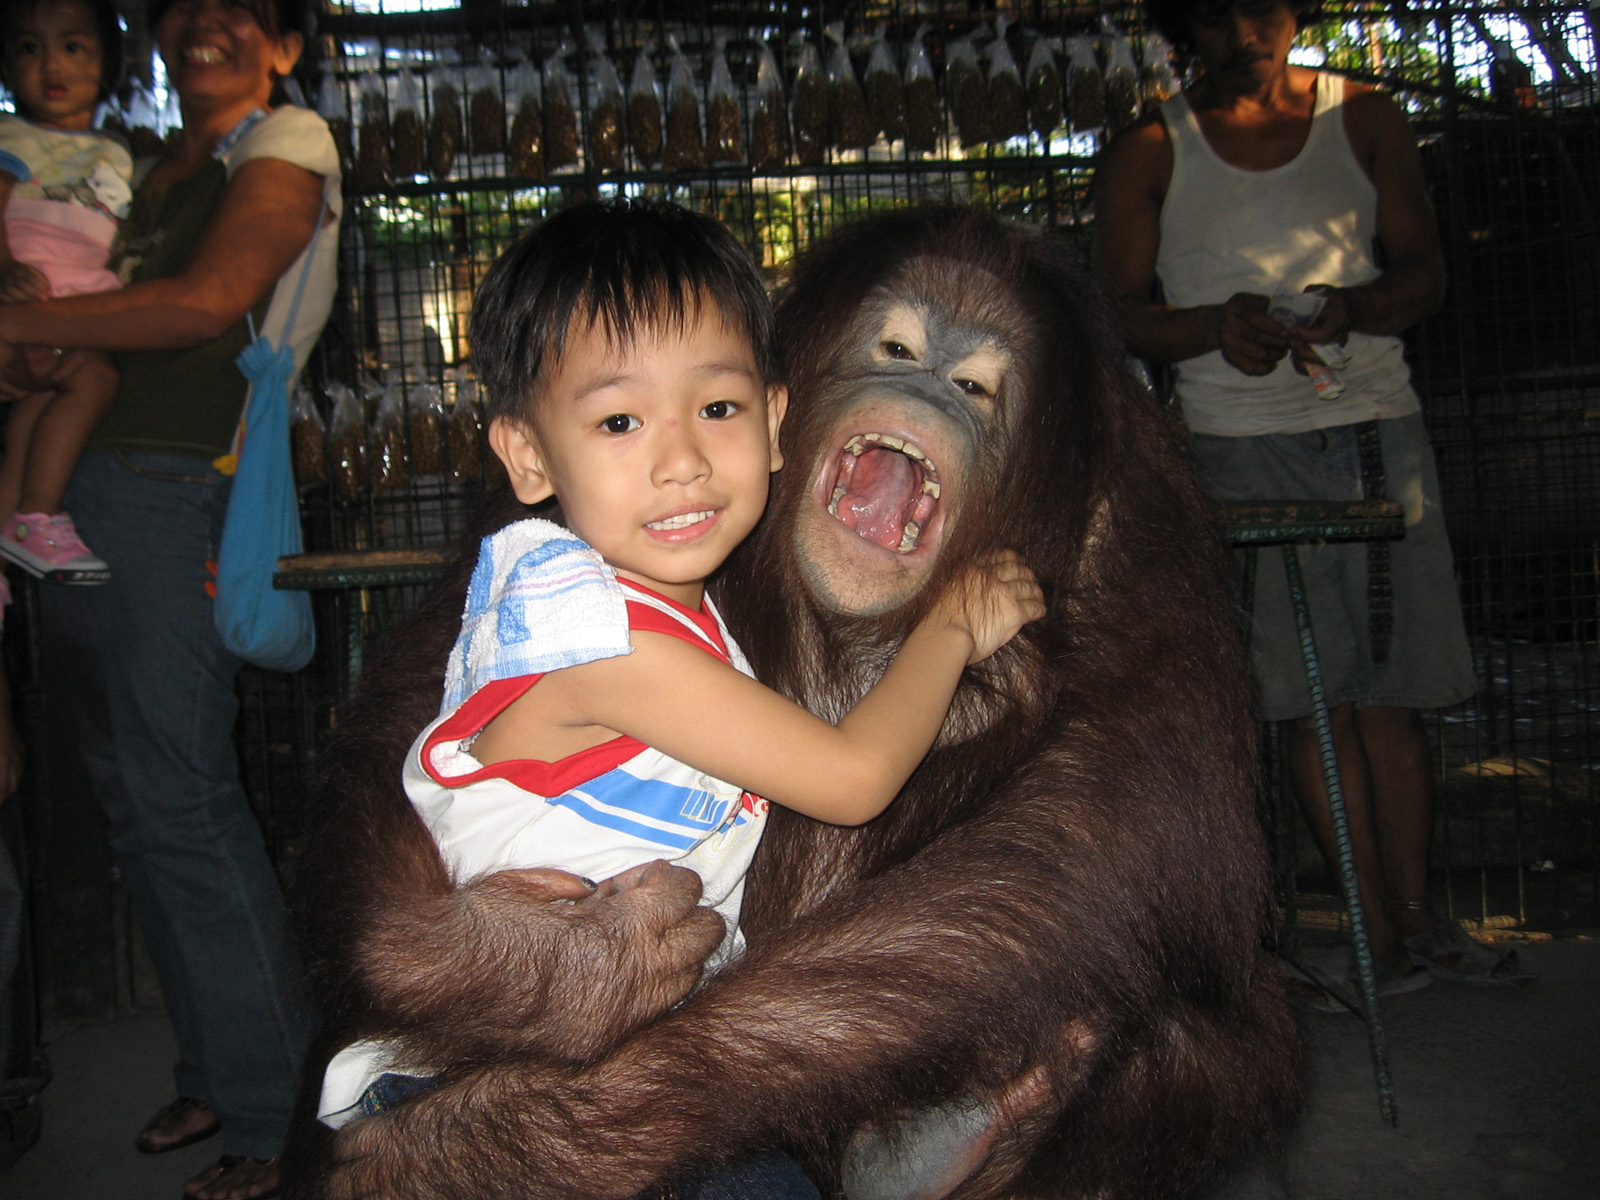 Malabon Zoo; a collection of endemic Philippine animals